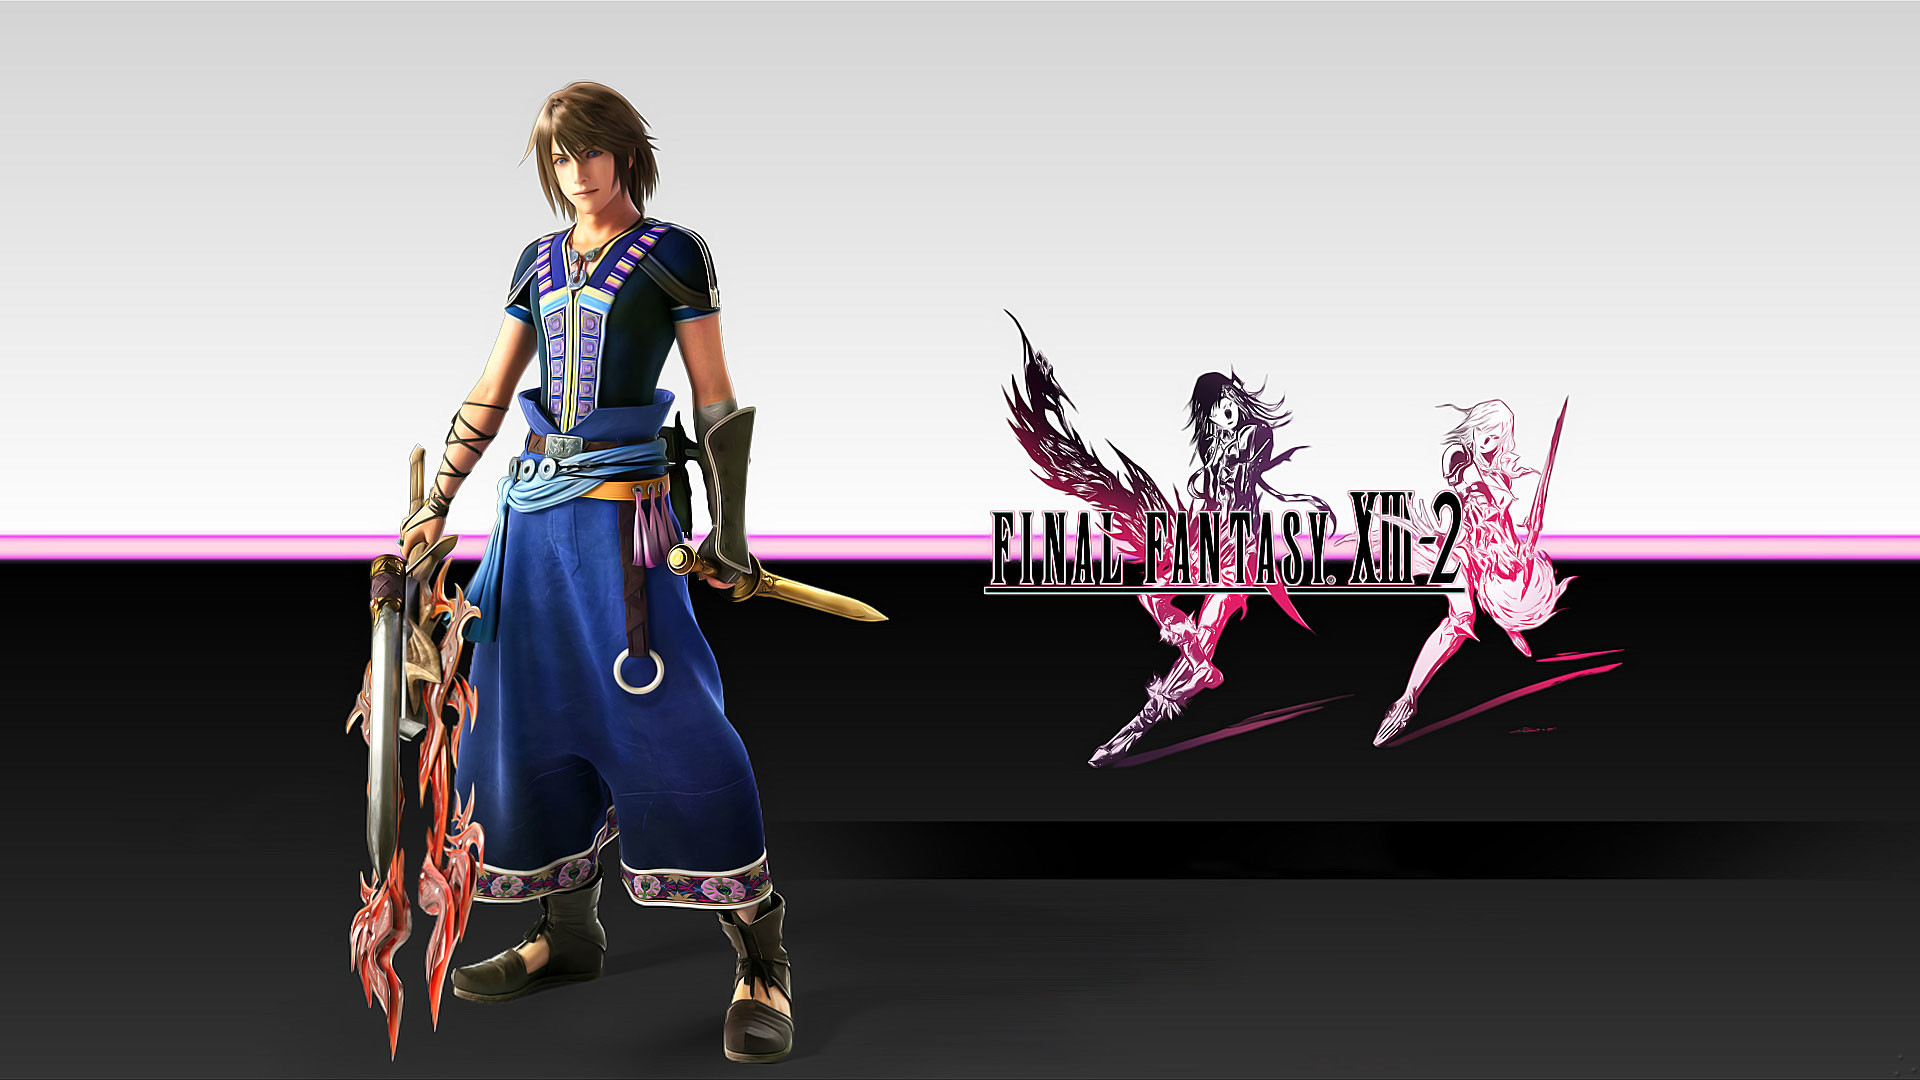 … 3 final fantasy x 13 2 wallpapers and themepack for windows 7 …